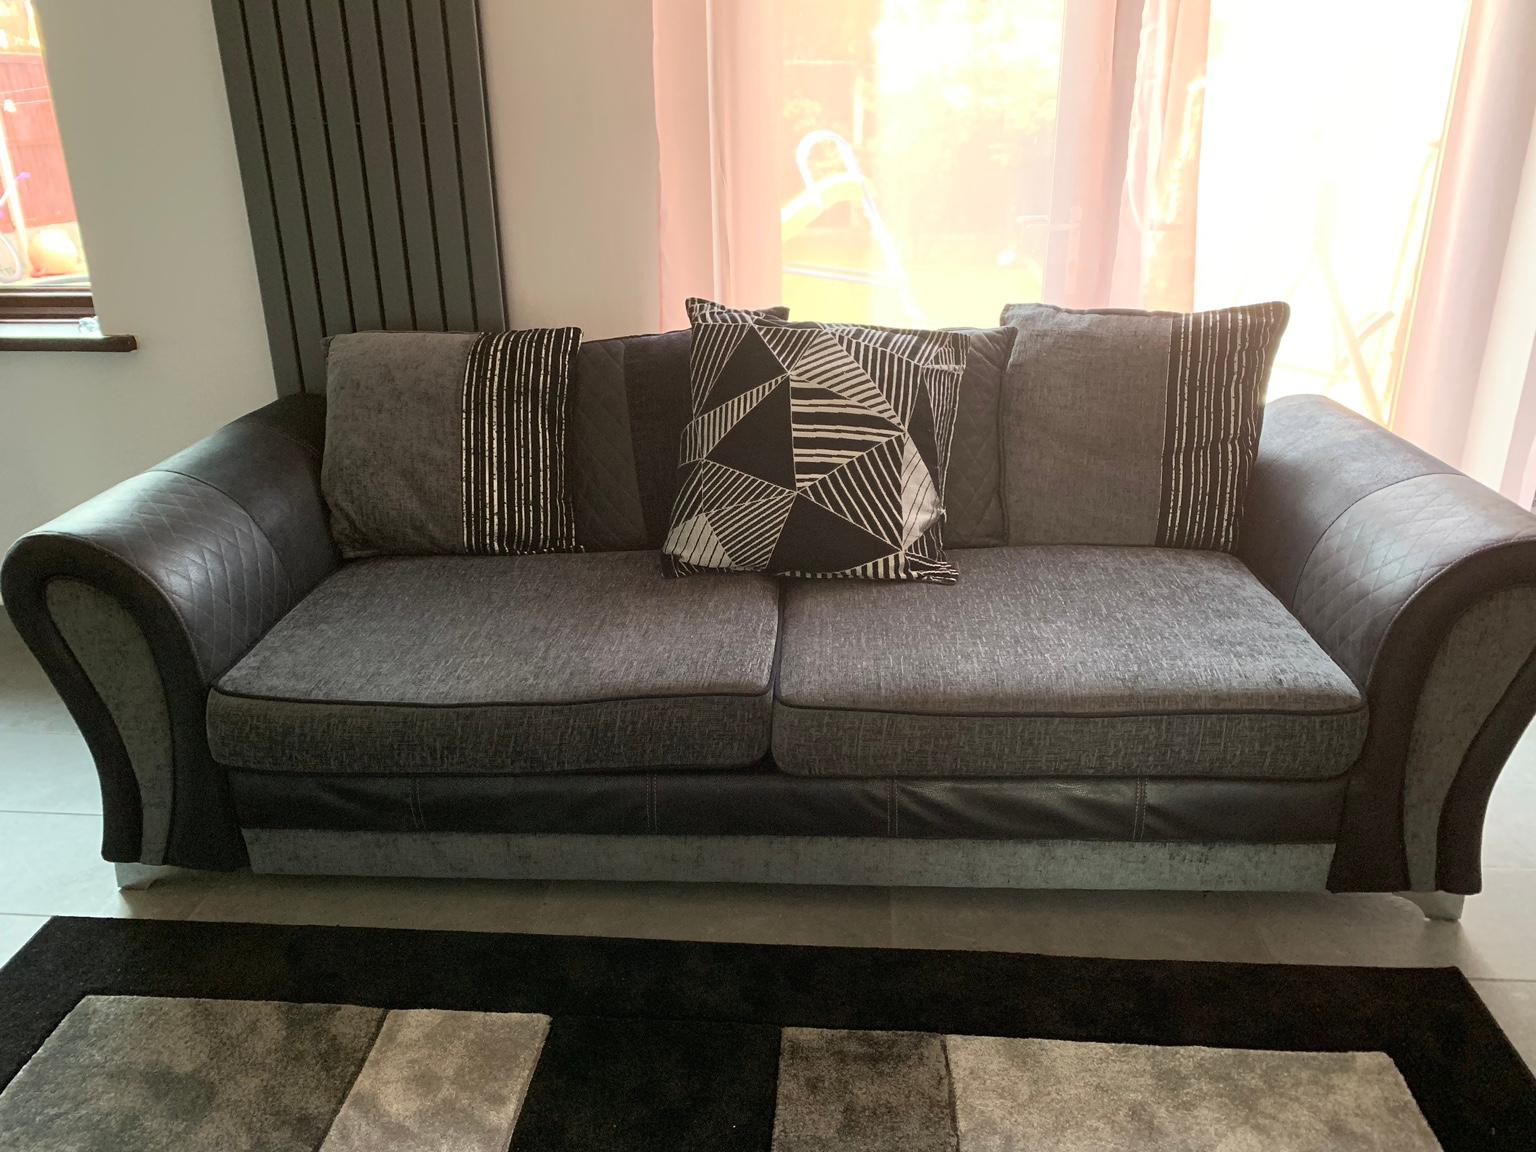 Dfs 3 Seater Sofa In Wolverhampton For